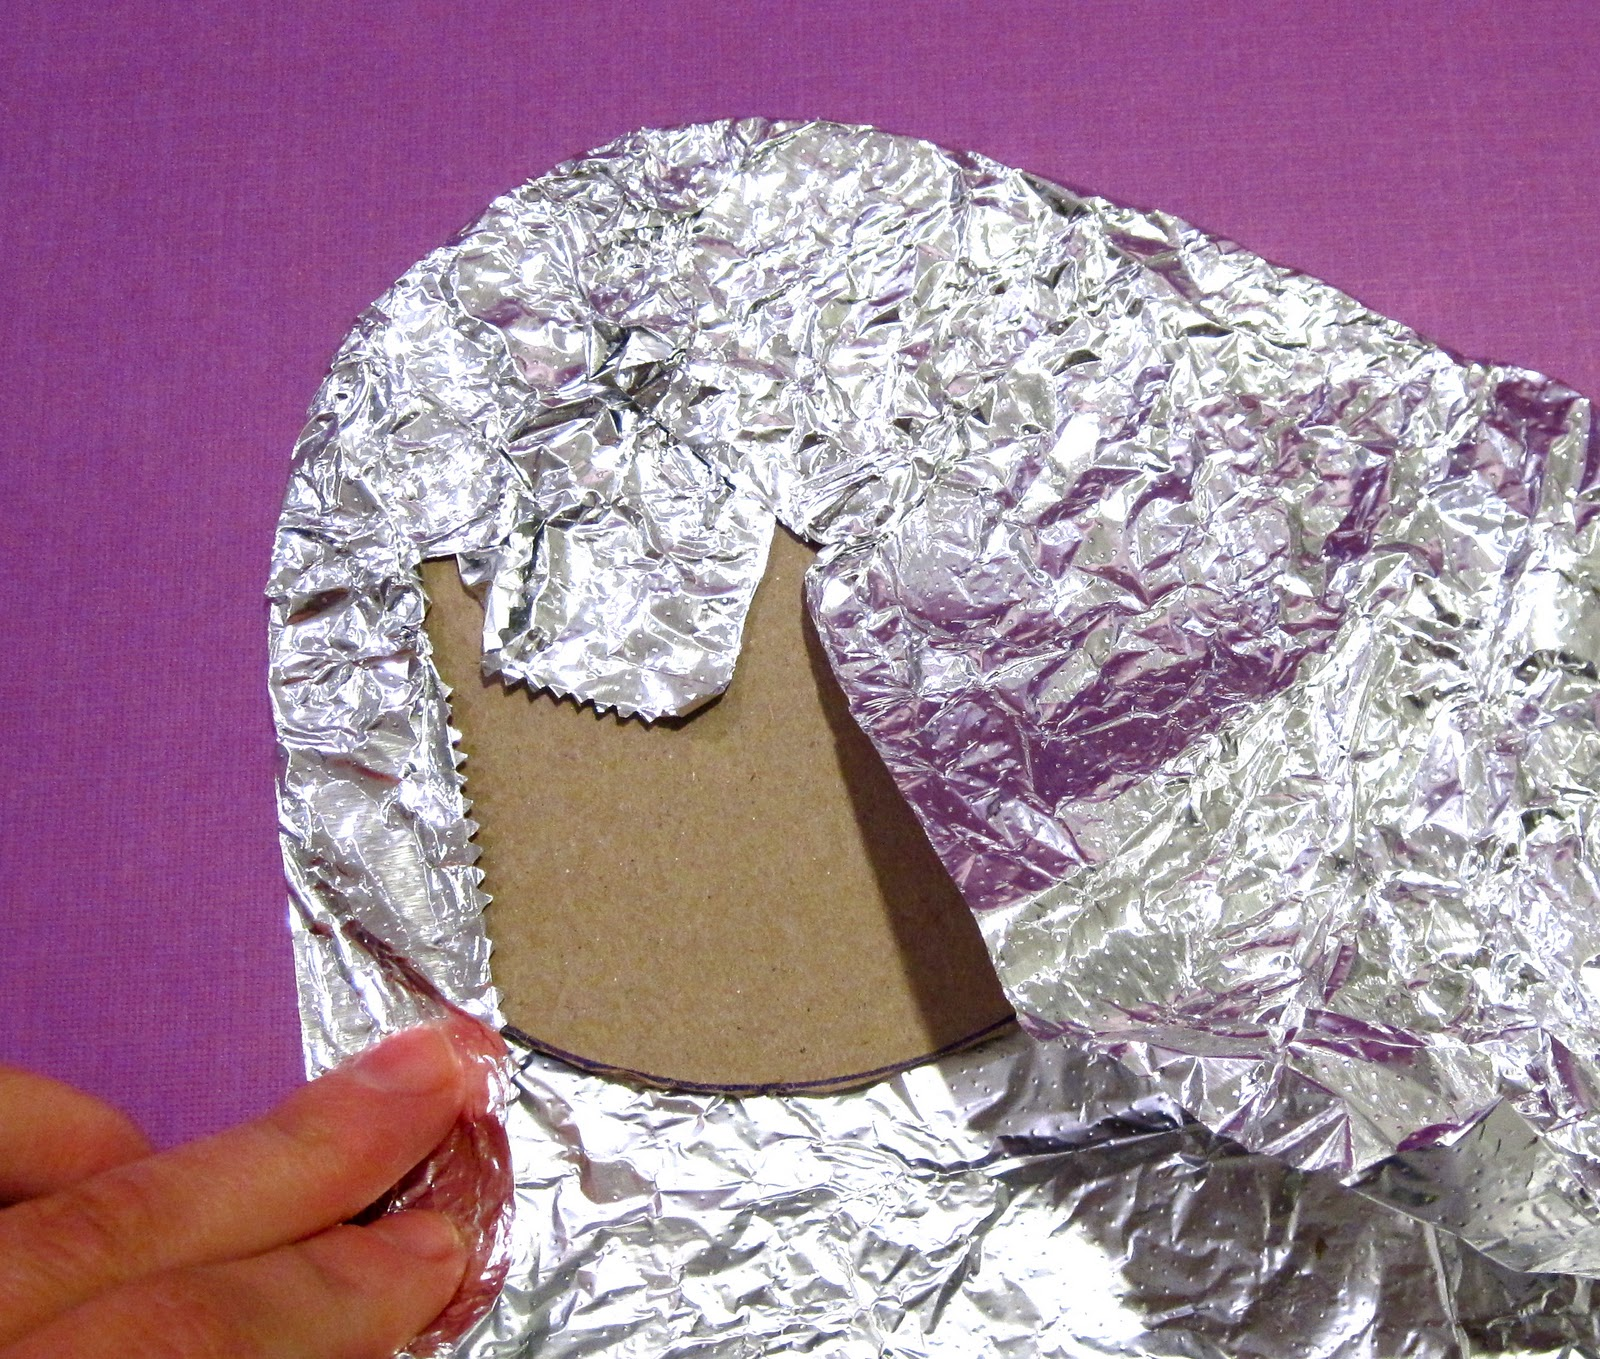 Giant Hershey Kiss Stuffed Chocolate Chip Cookies Of foil to wrap your ...